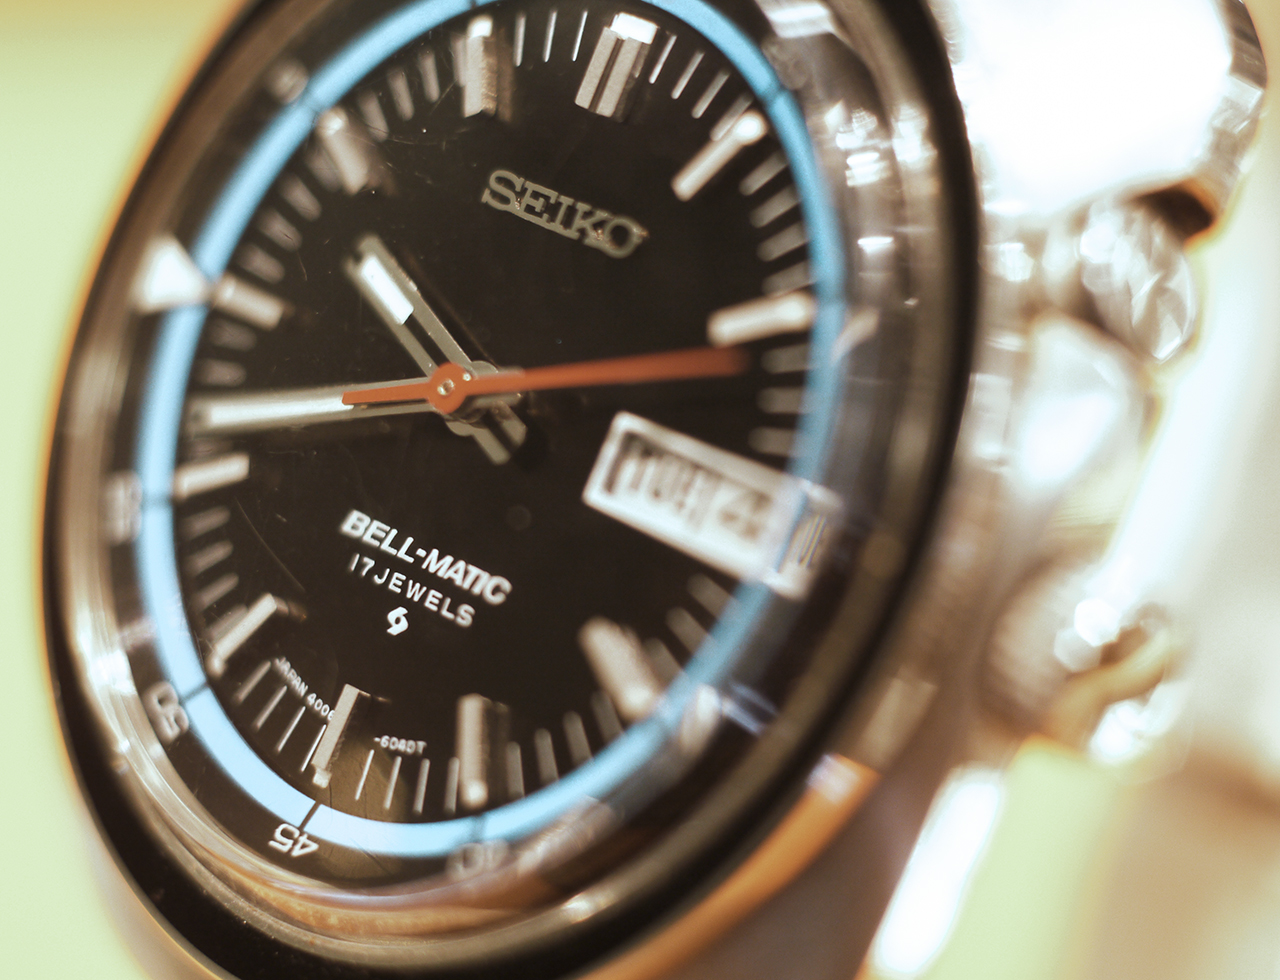 The Seiko Bell Matic 4006-6040T automatic alarm watch with day/date complication.